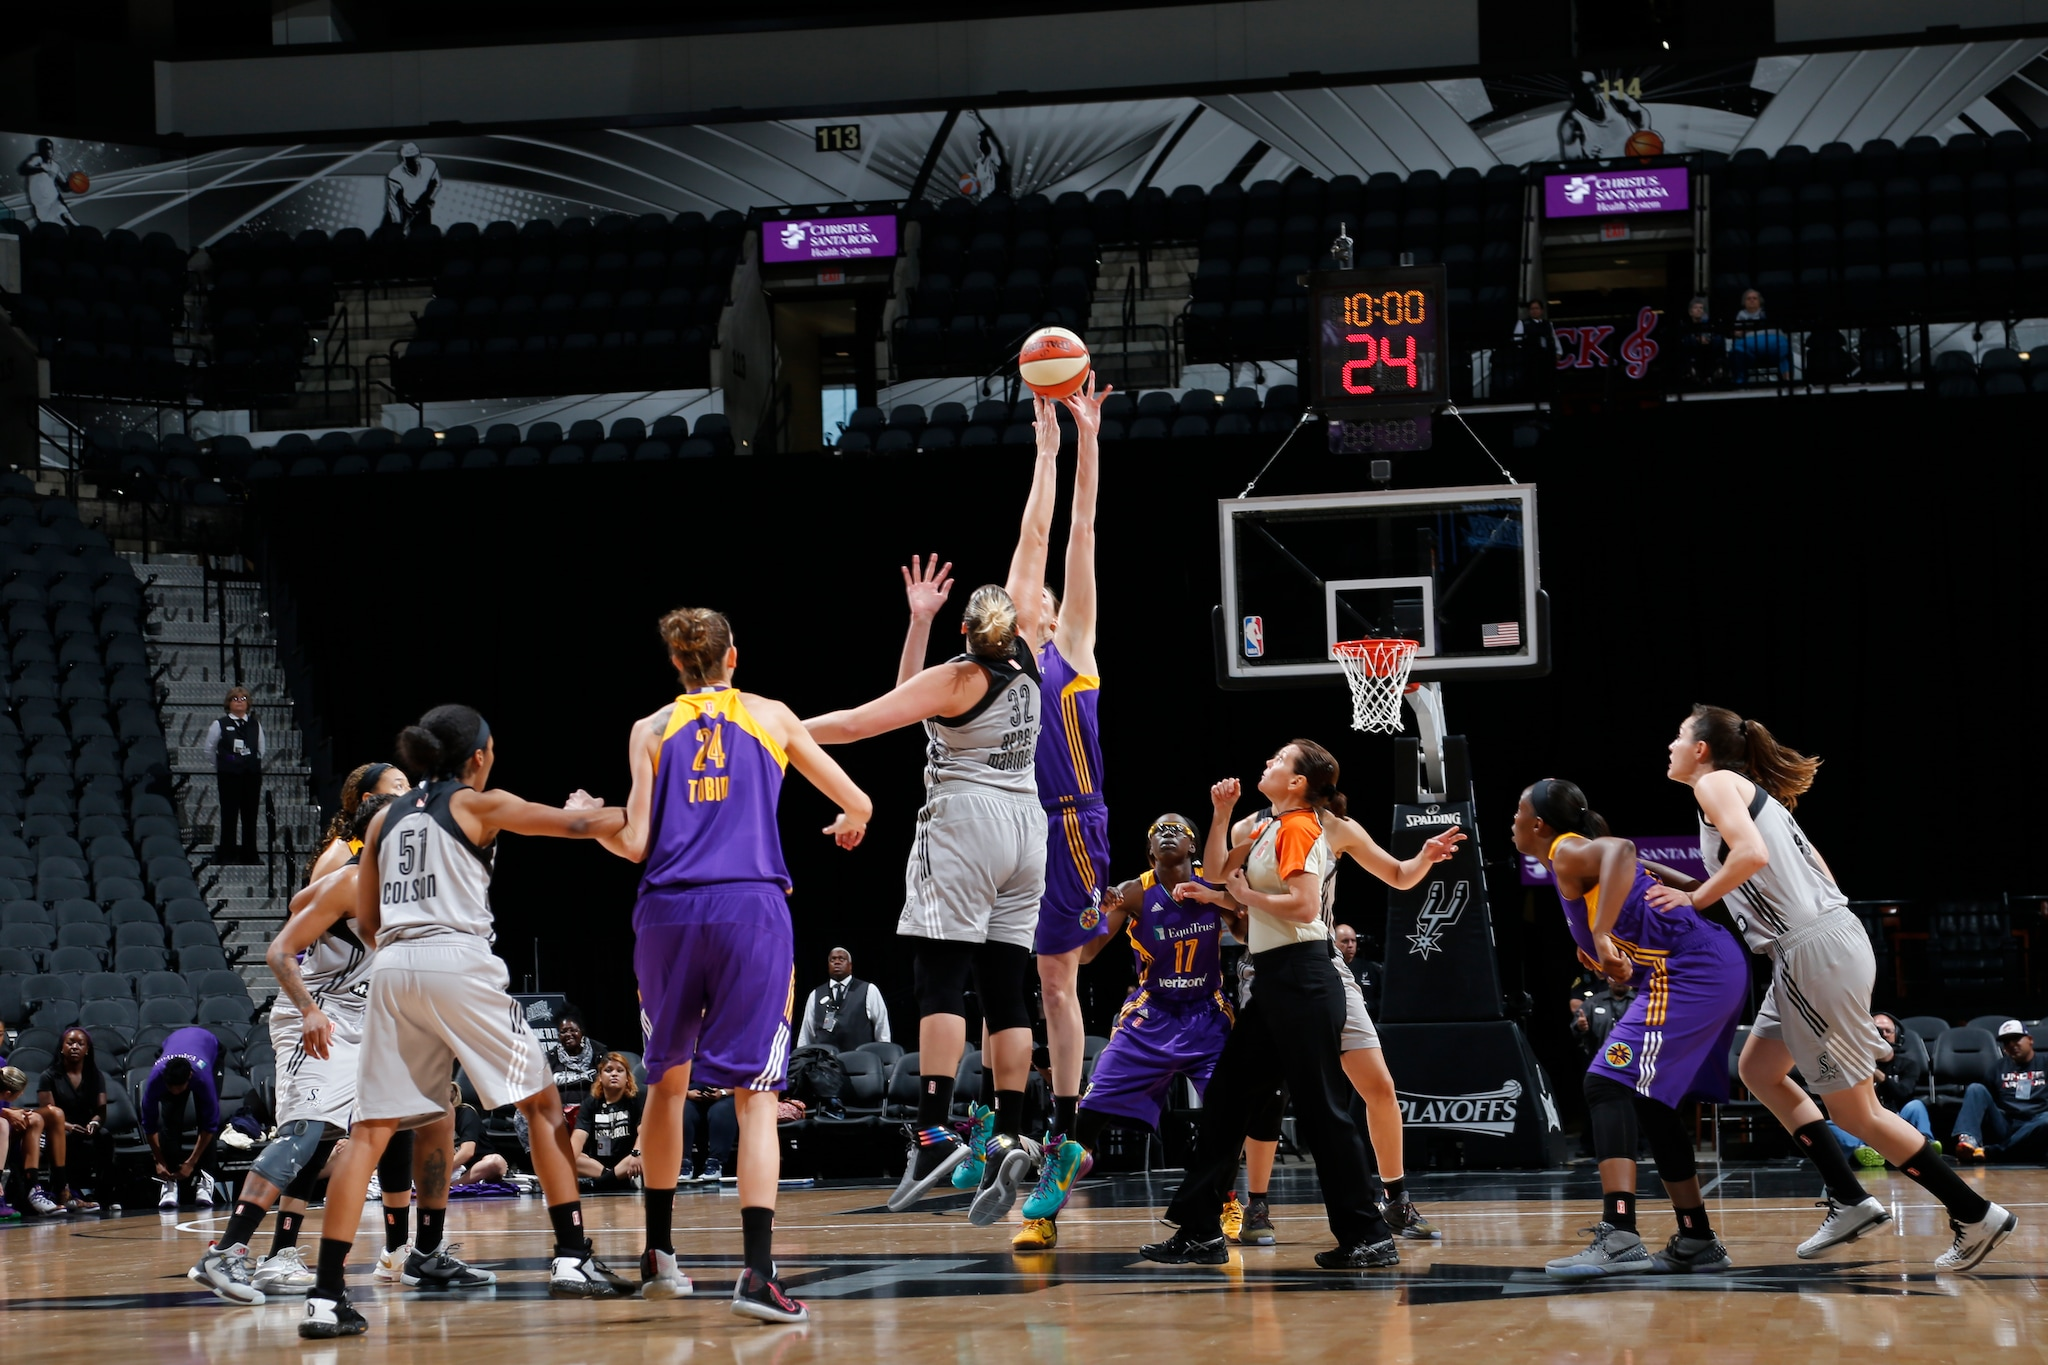 SAN ANTONIO, TX - MAY 9:  The opening tipoff between the San Antonio Stars and the Los Angeles Sparks on May 9, 2016 at the AT&T Center in San Antonio, Texas. NOTE TO USER: User expressly acknowledges and agrees that, by downloading and or using this photograph, user is consenting to the terms and conditions of the Getty Images License Agreement. Mandatory Copyright Notice: Copyright 2016 NBAE (Photos by Chris Covatta/NBAE via Getty Images)